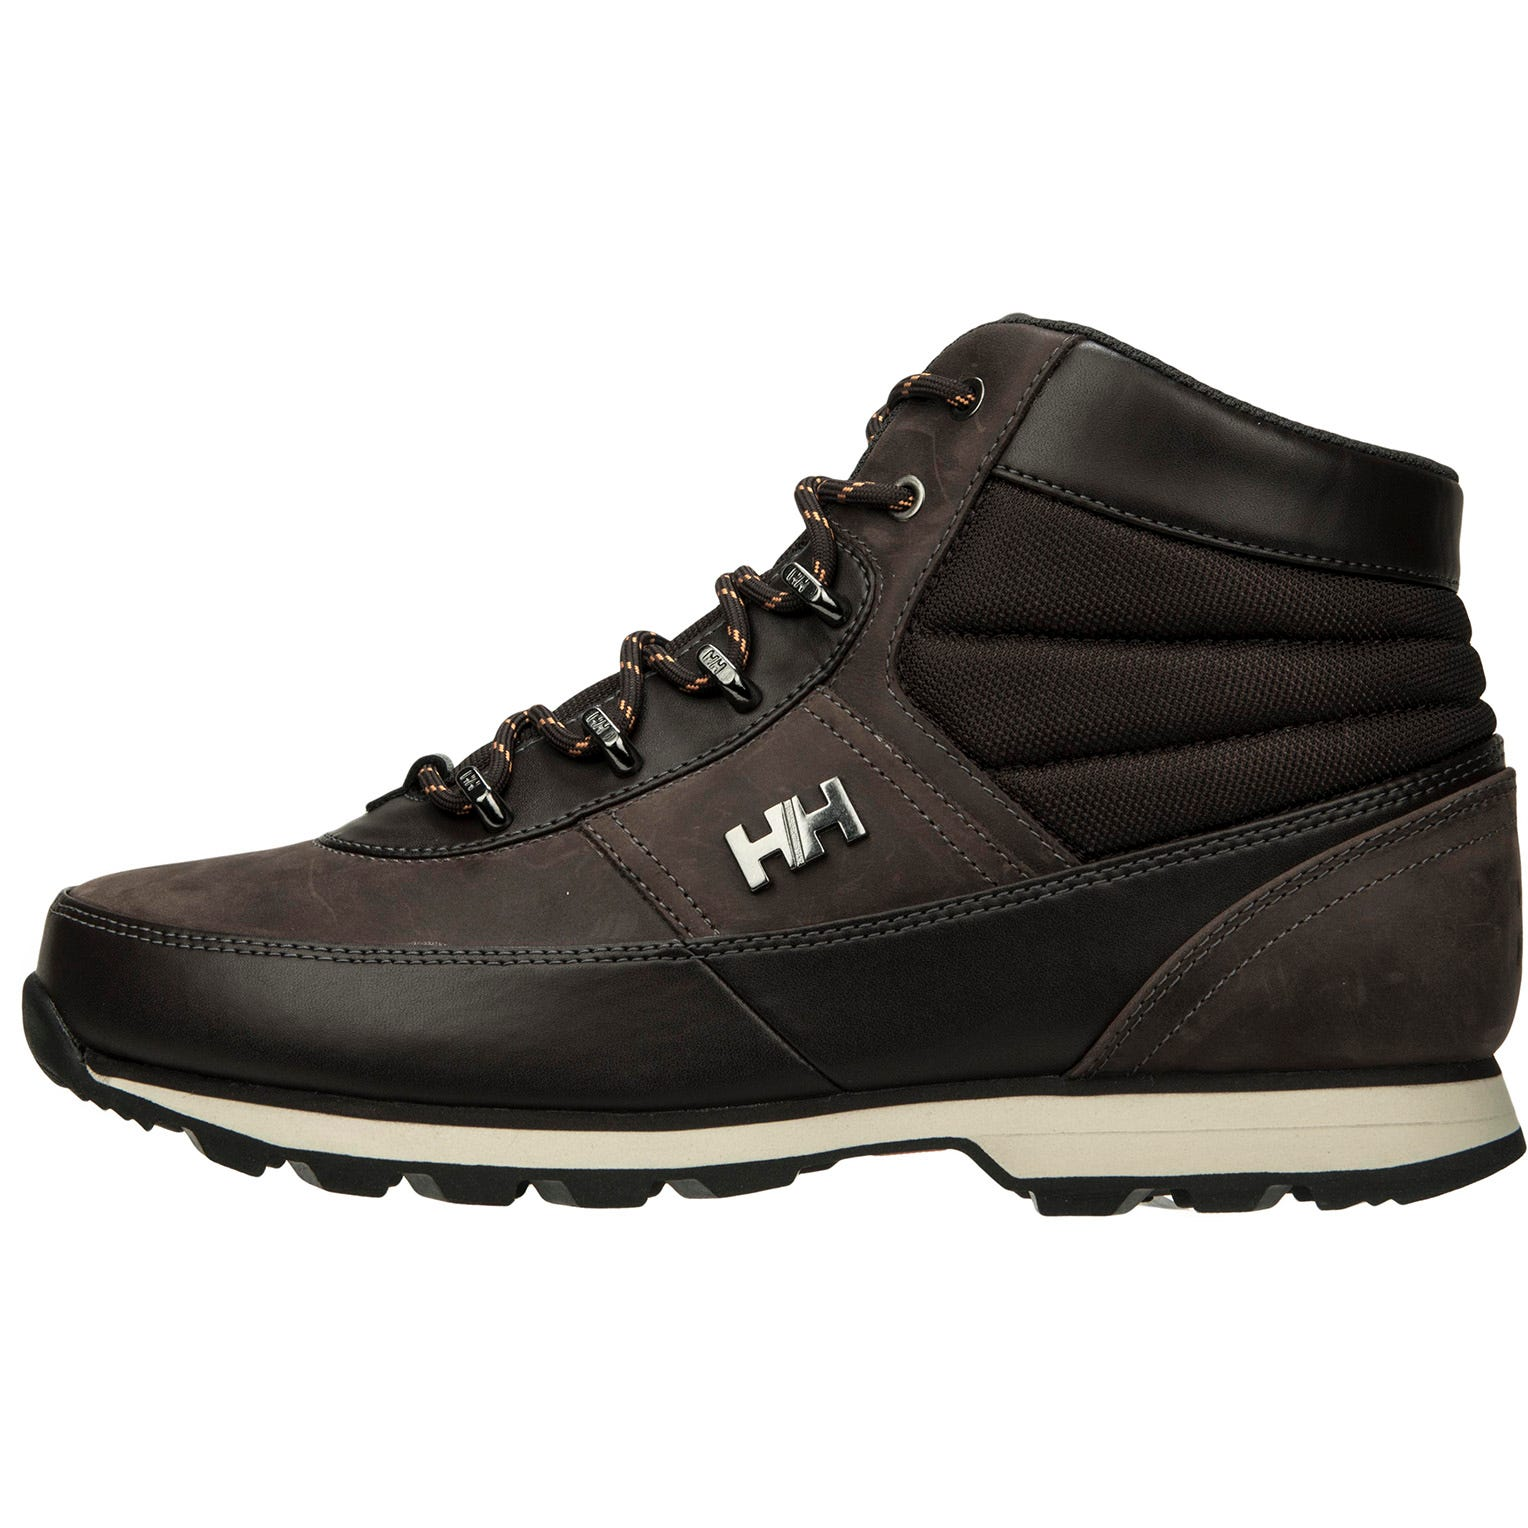 Helly Hansen woodlands Dame sko | FINN.no